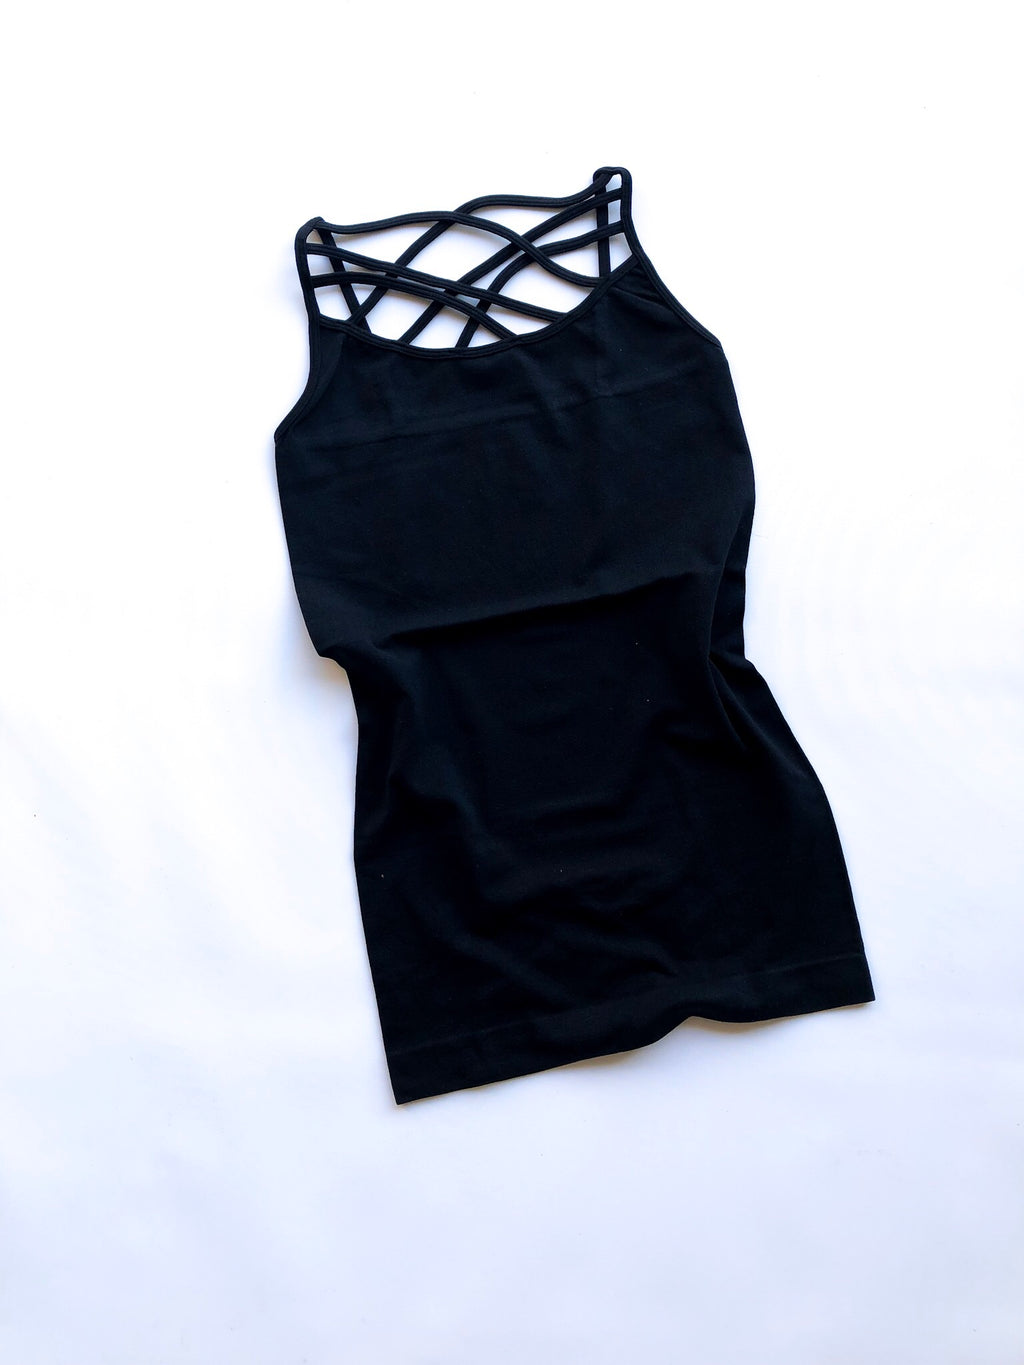 Cage Cami in Black